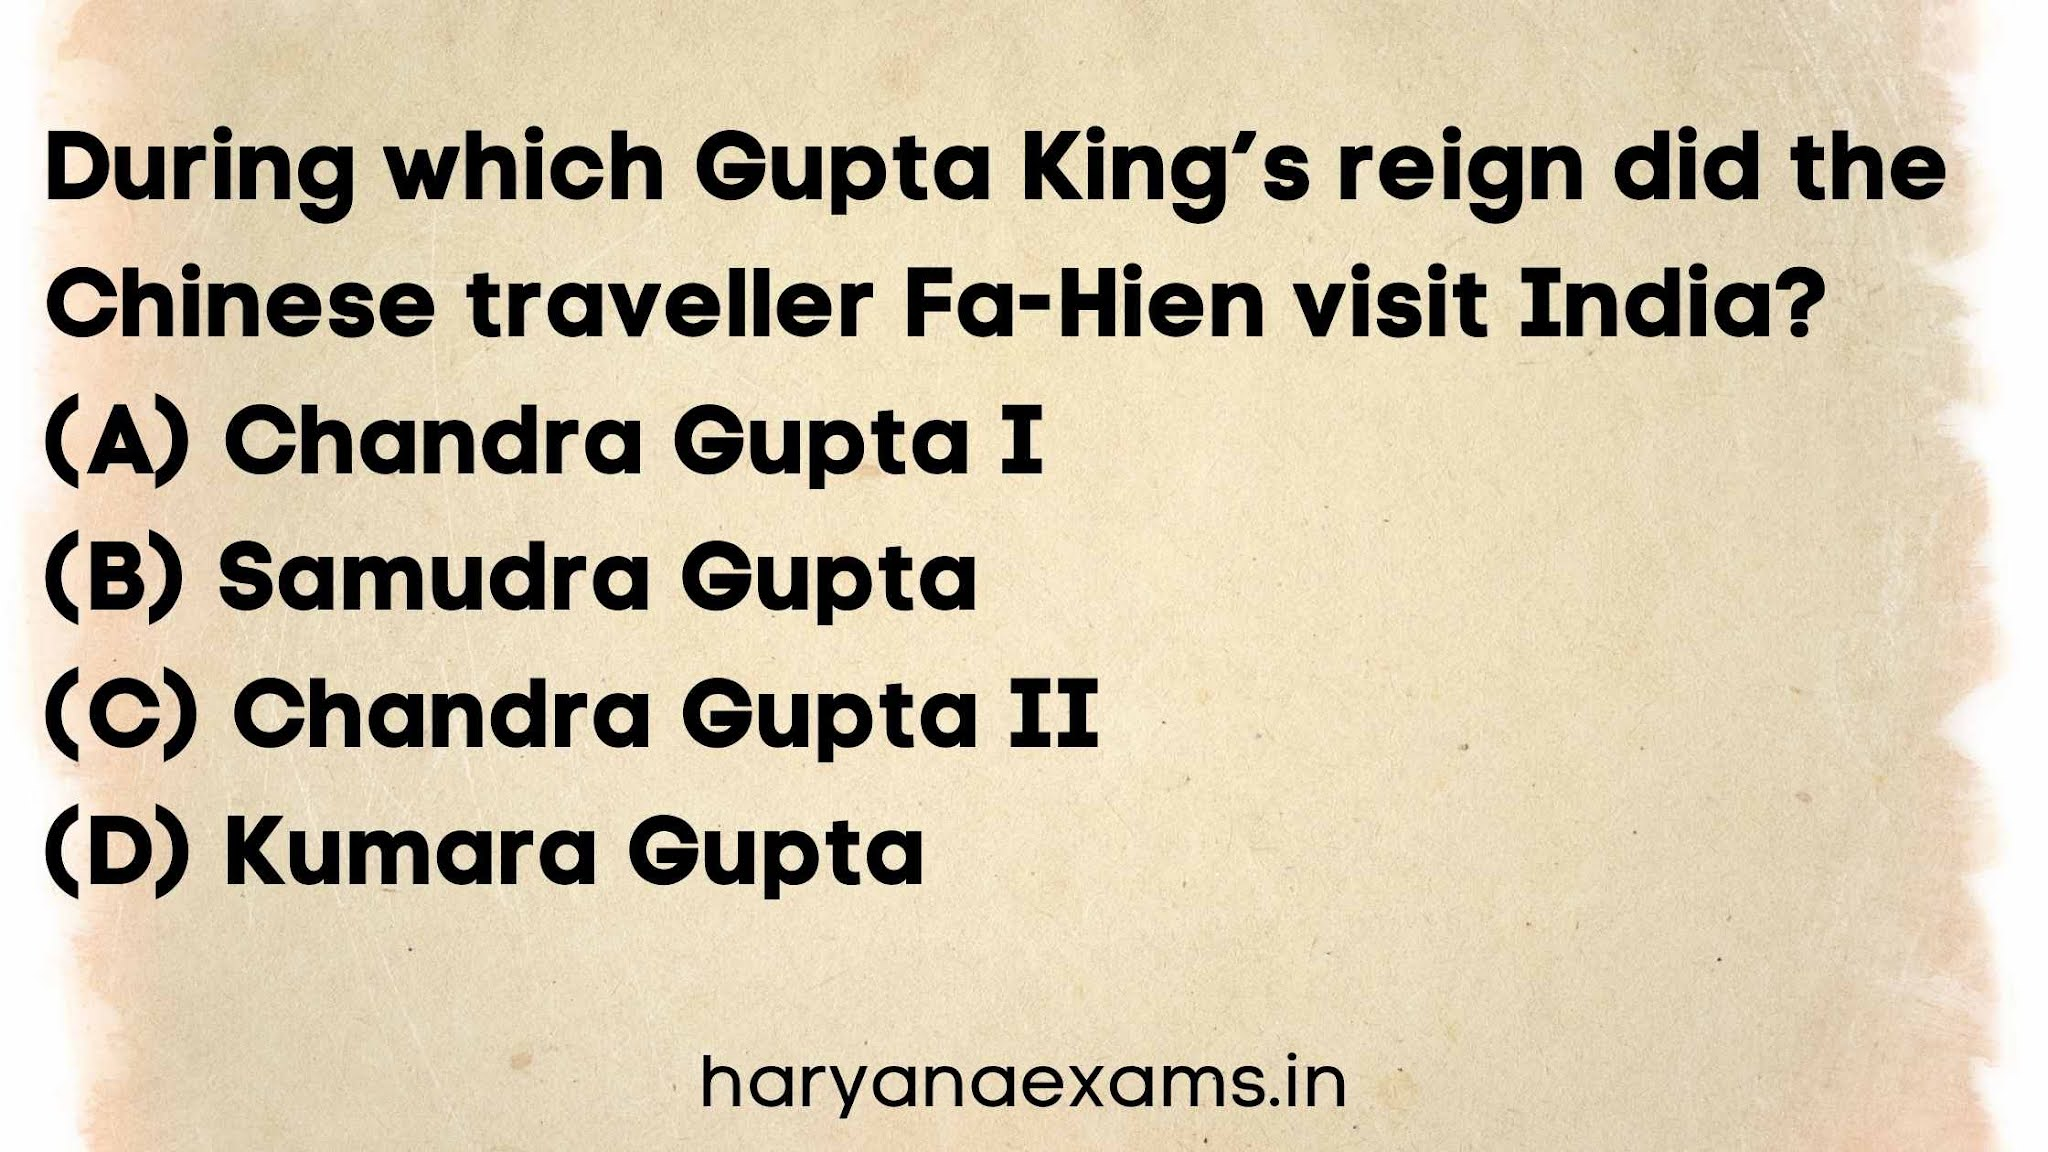 During which Gupta King's reign did the Chinese traveller Fa-Hien visit India?   (A) Chandra Gupta I   (B) Samudra Gupta   (C) Chandra Gupta II   (D) Kumara Gupta